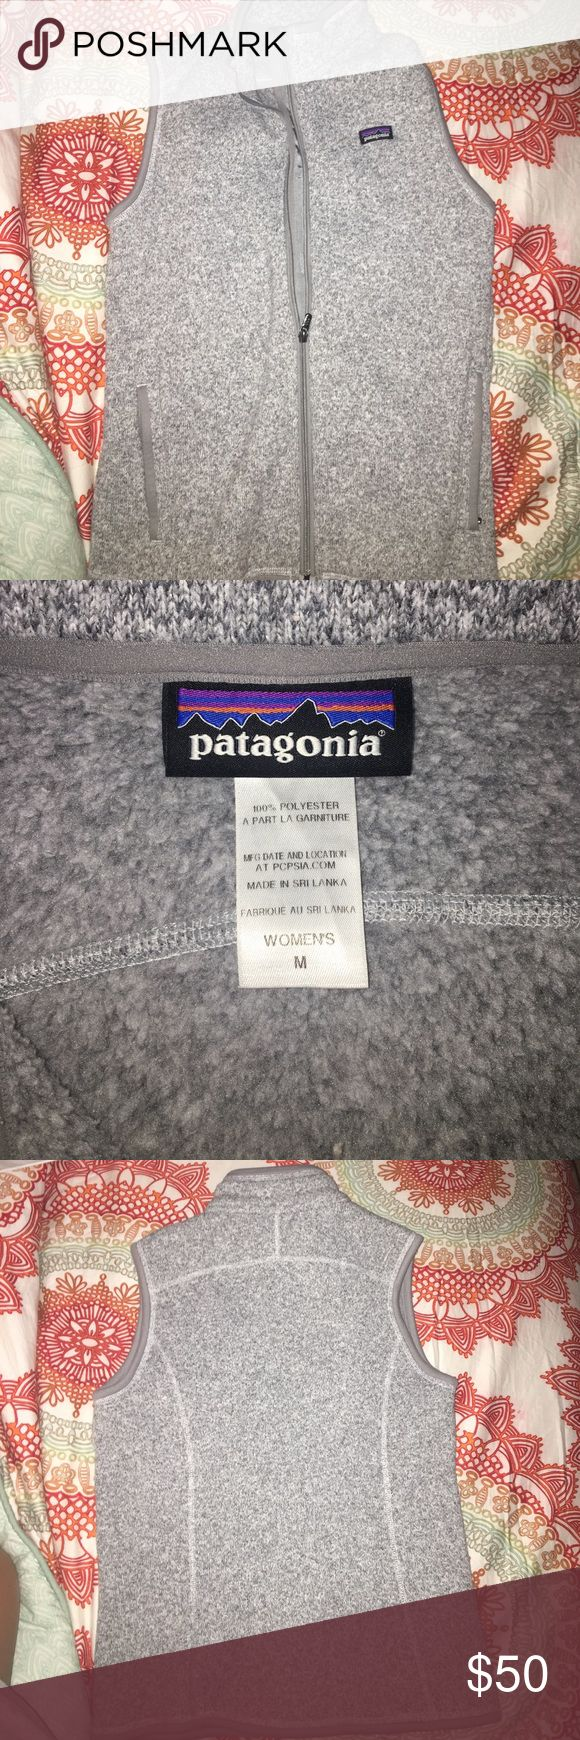 Women's Patagonia gray vest Patagonia Better Sweater Vest - Women's Size medium. Color (birch white), excellent condition only worn twice. Patagonia Jackets & Coats Vests